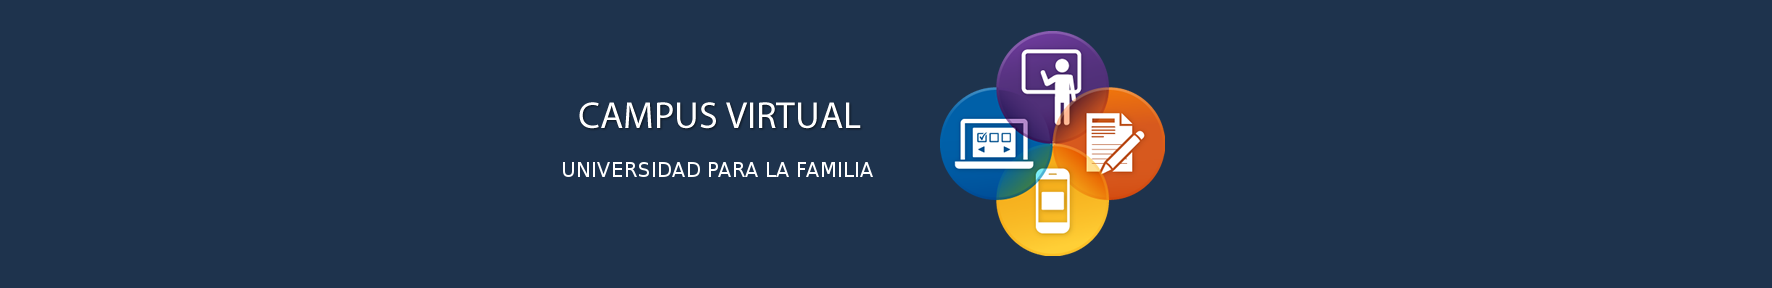 universidad para la familia - Campus Virtual